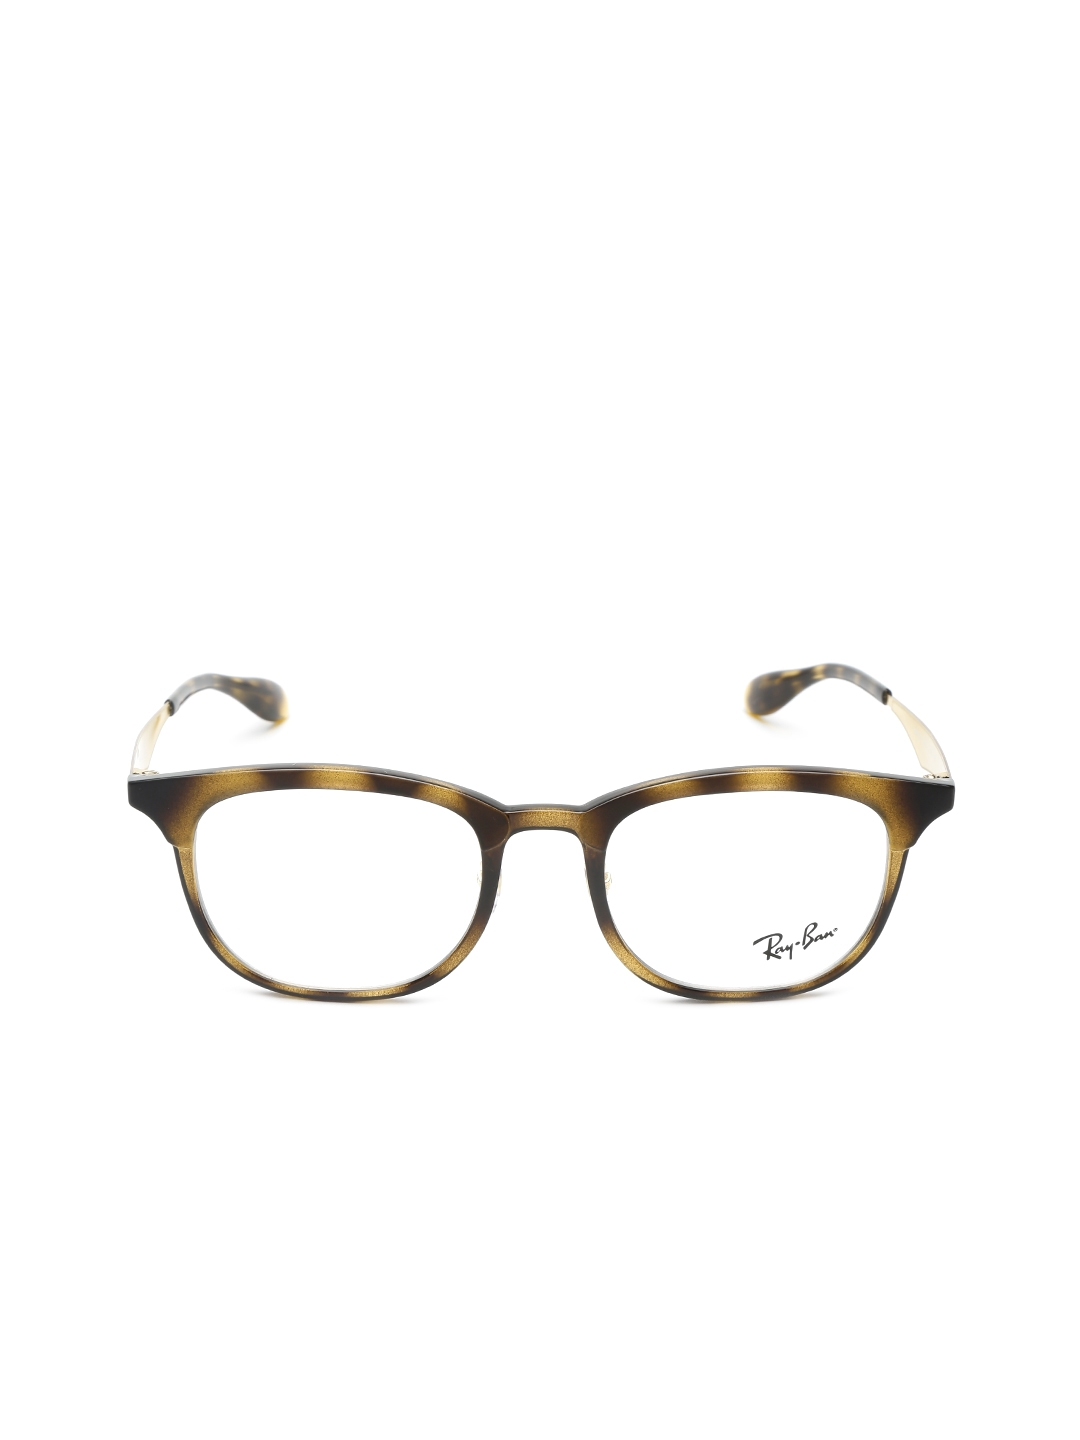 17bc06701f8 Buy Ray Ban Unisex Brown Printed Square Frames 0RX7112568351 ...